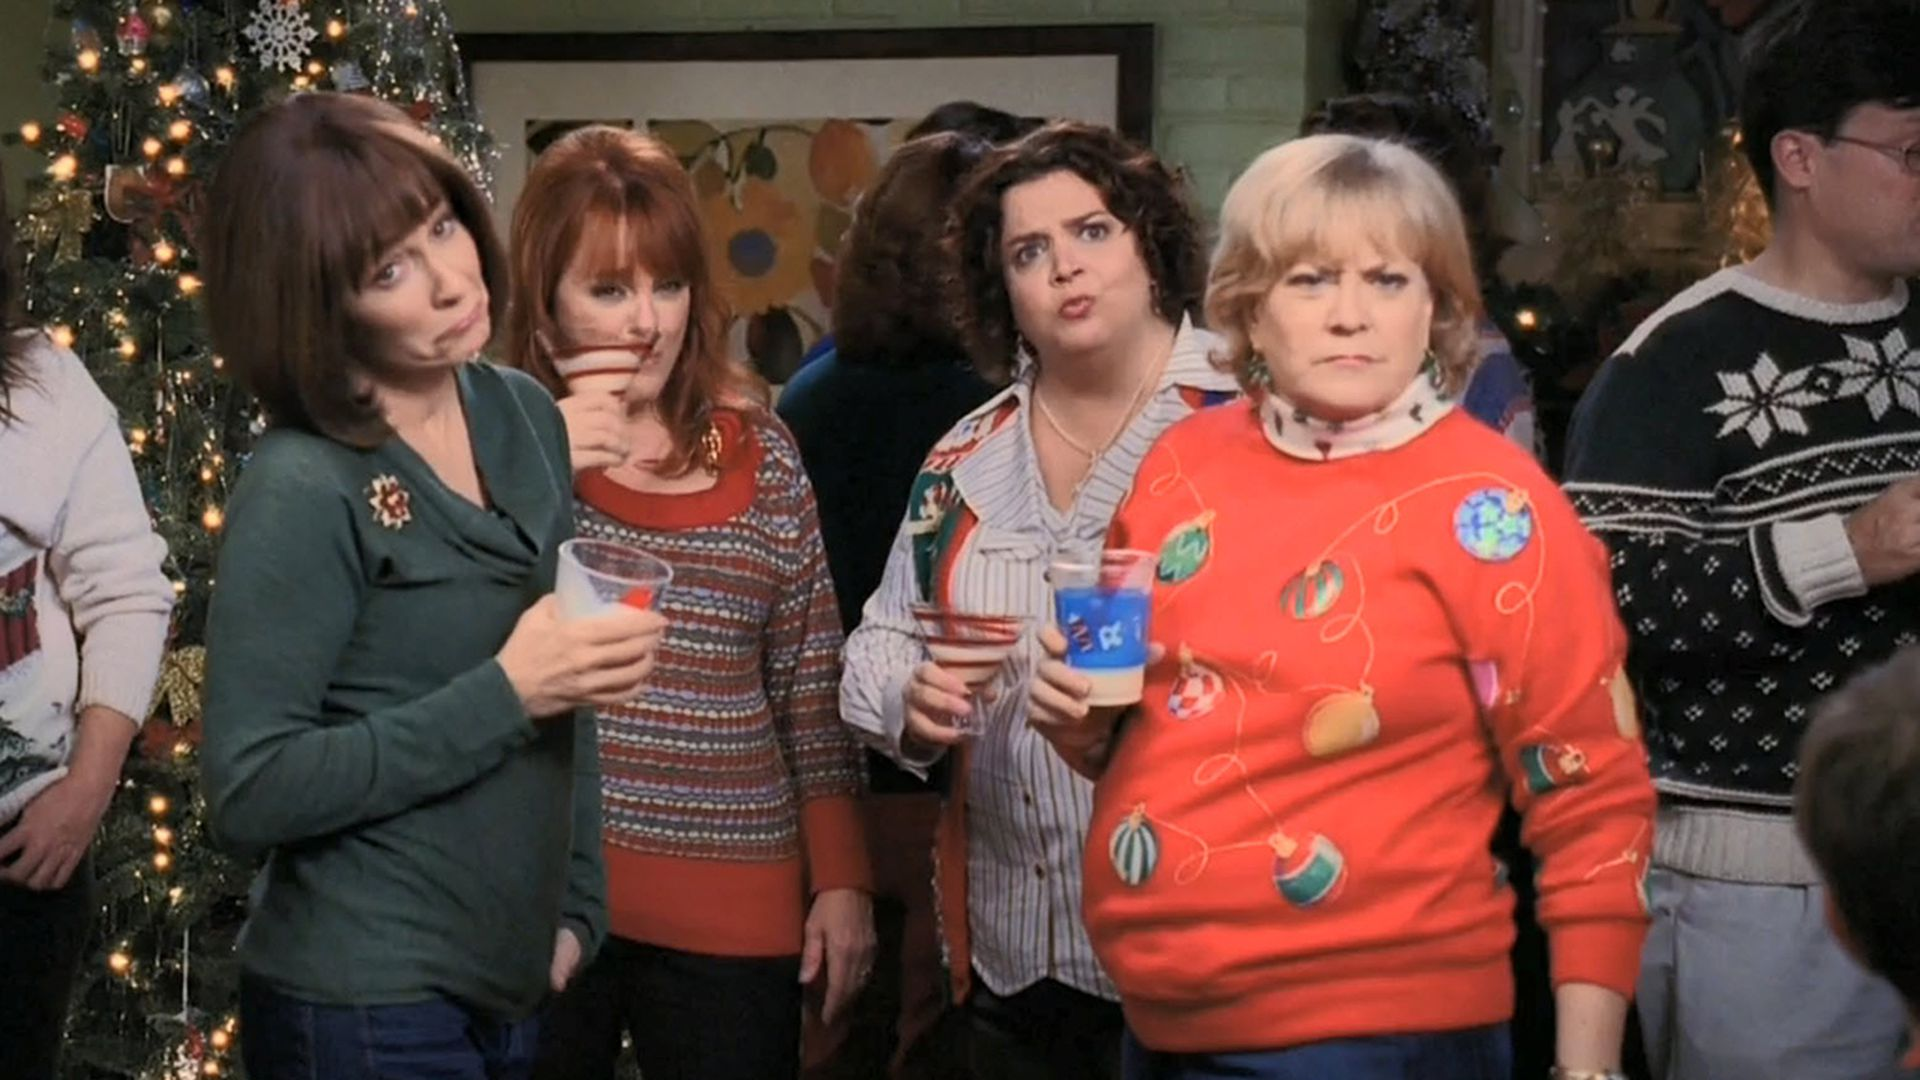 Full House Christmas Episodes.The Middle Season 3 Ep 11 A Christmas Gift Watch Tv Online